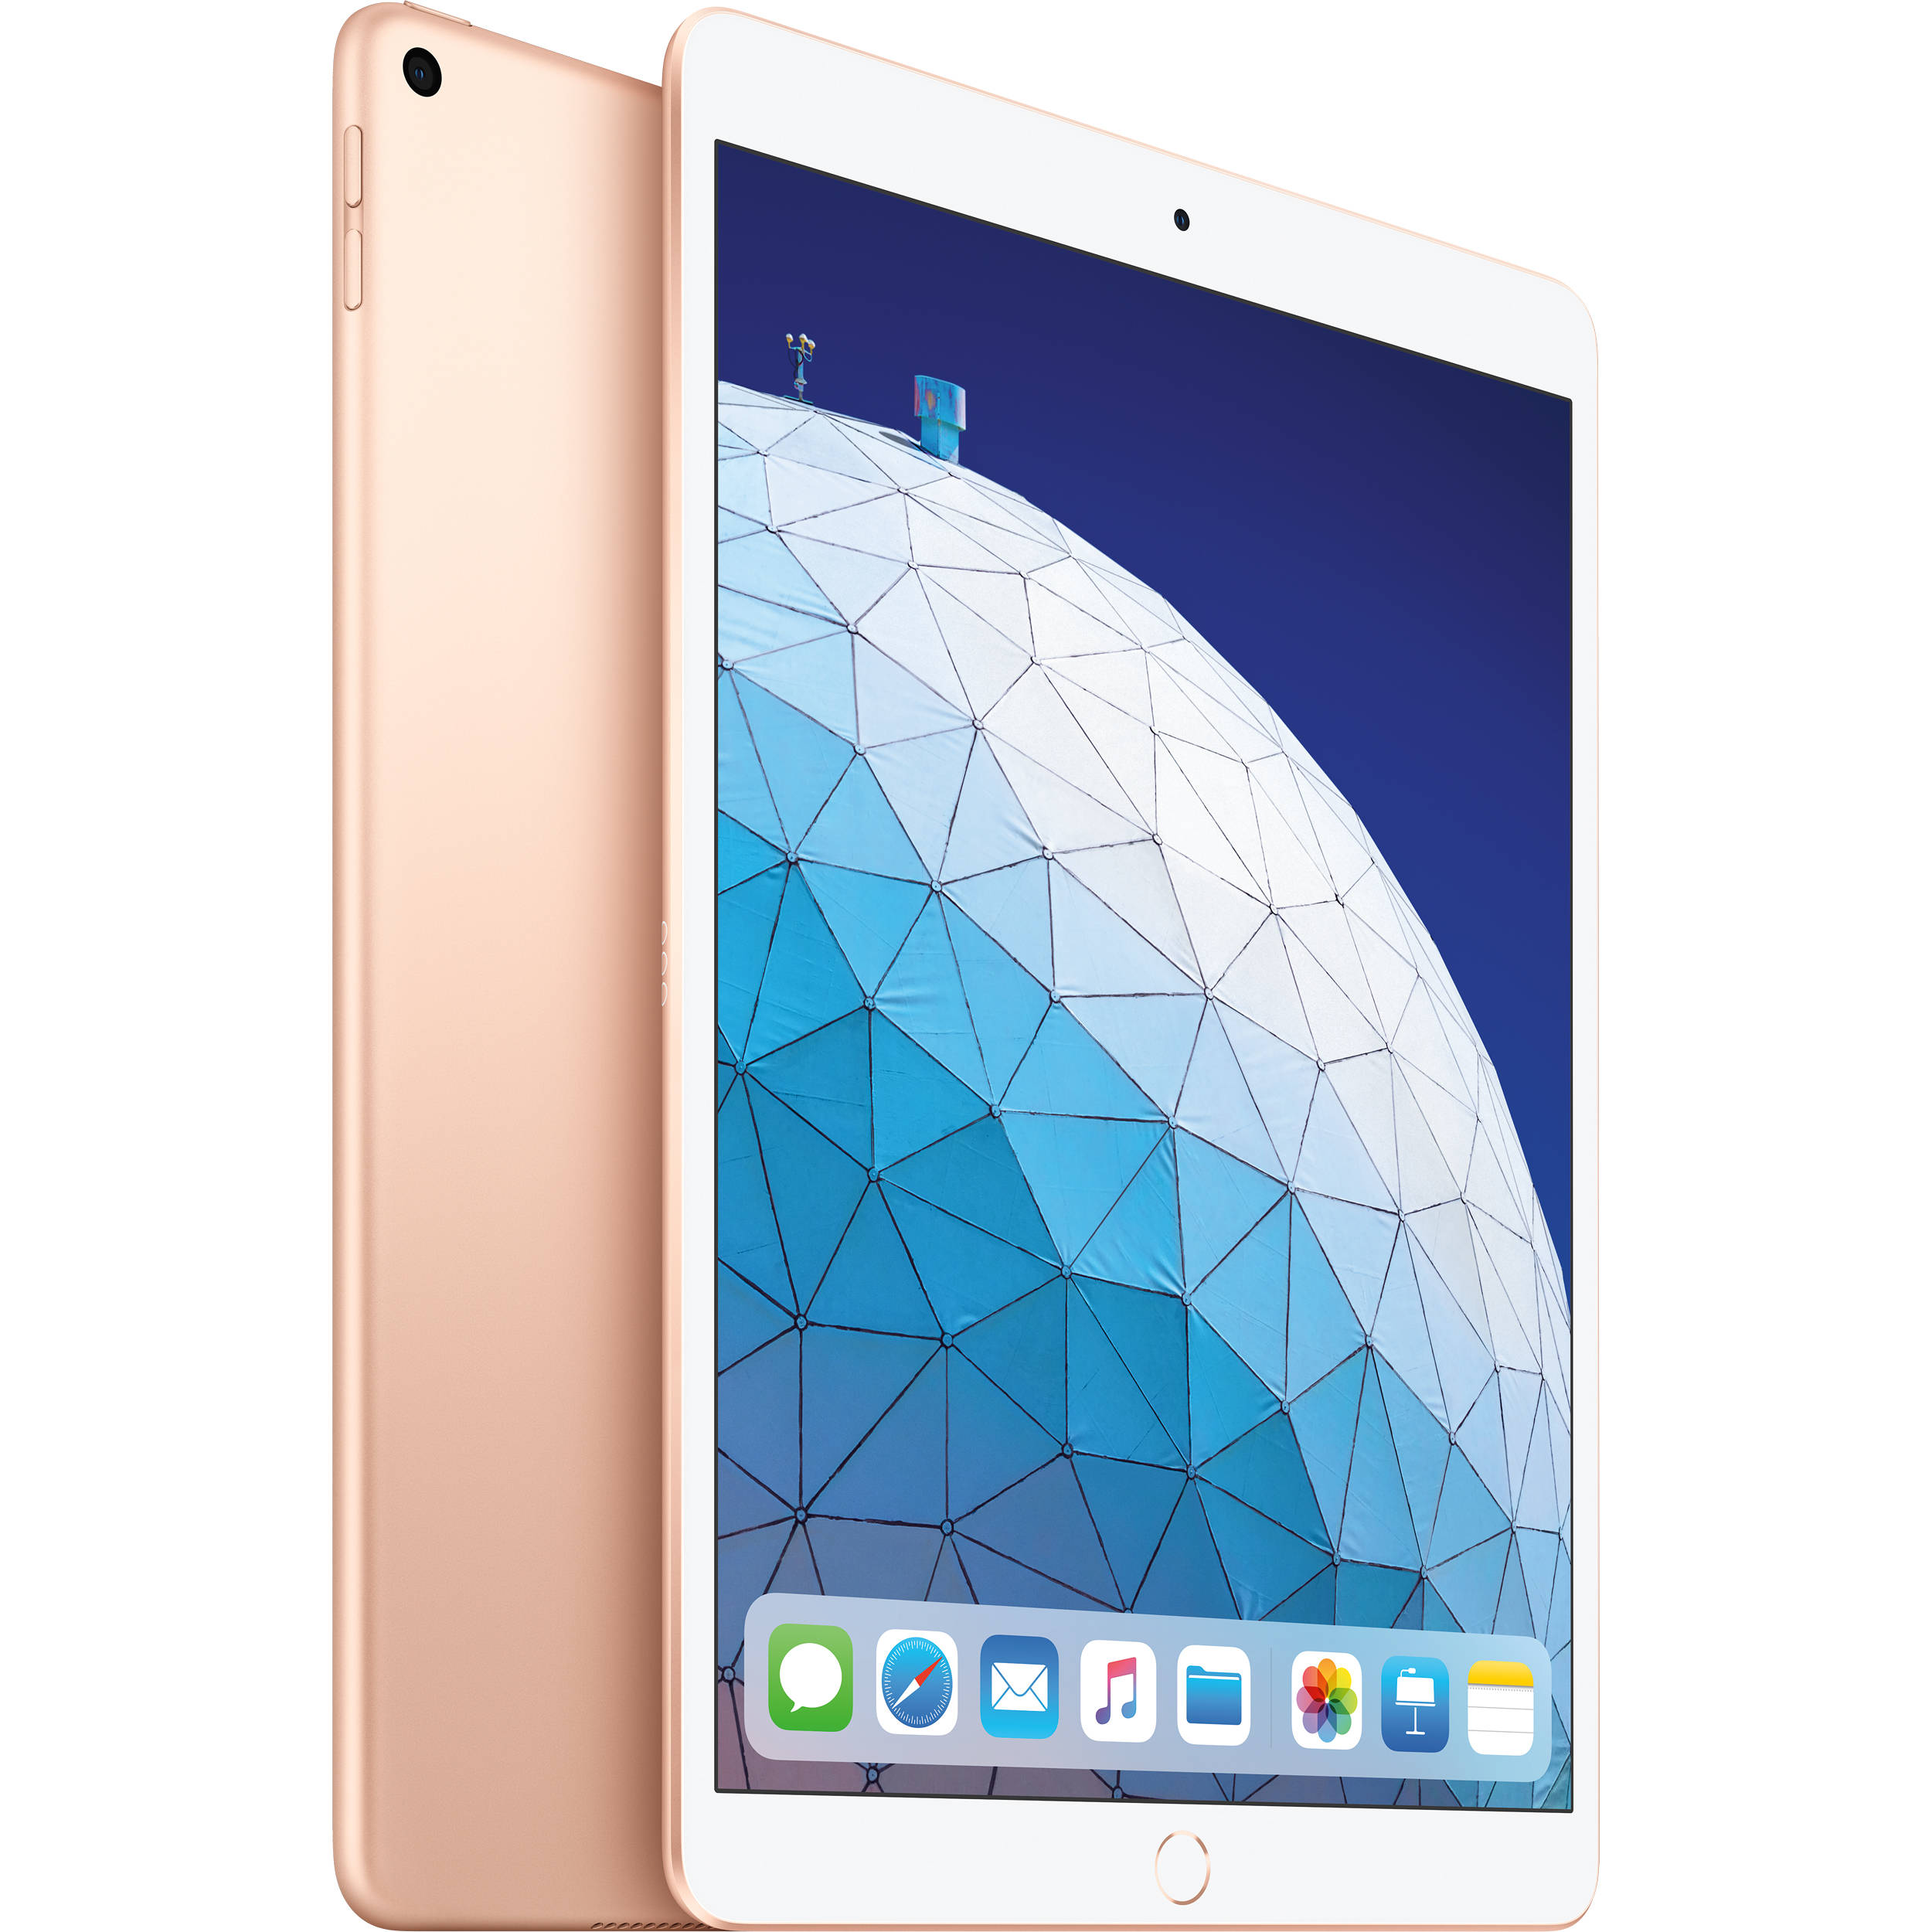 """Image of Apple iPad Air (2019) 10.5"""" MUUL2 64GB WiFi - Gold (with 1 year official Apple Warranty)"""